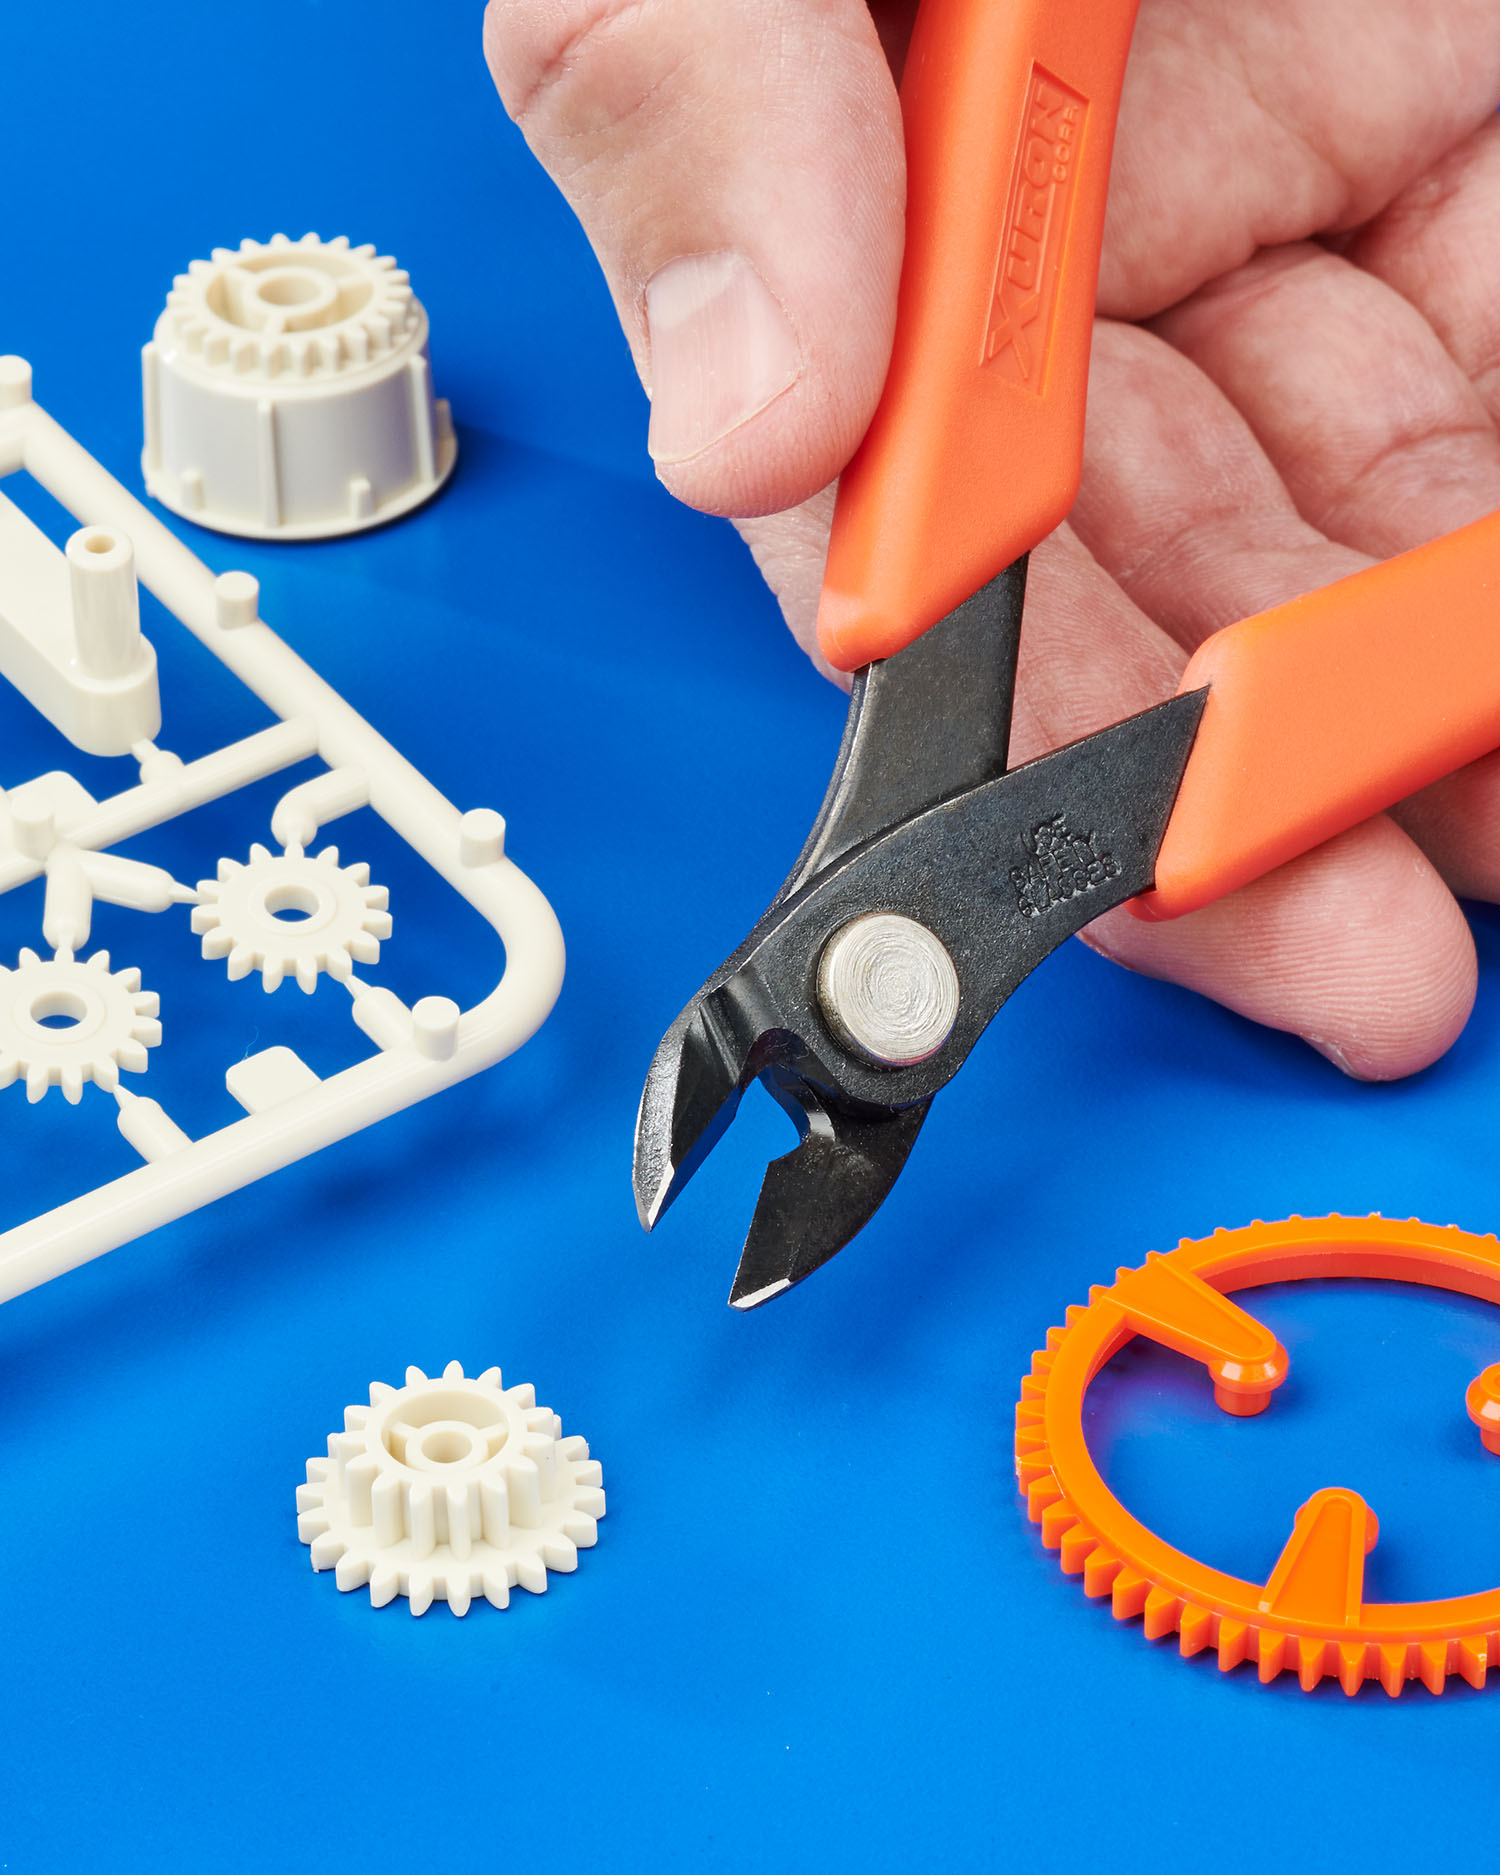 PLASTIC SPRUE CUTTER REMOVES PARTS WITHOUT CRUSHING